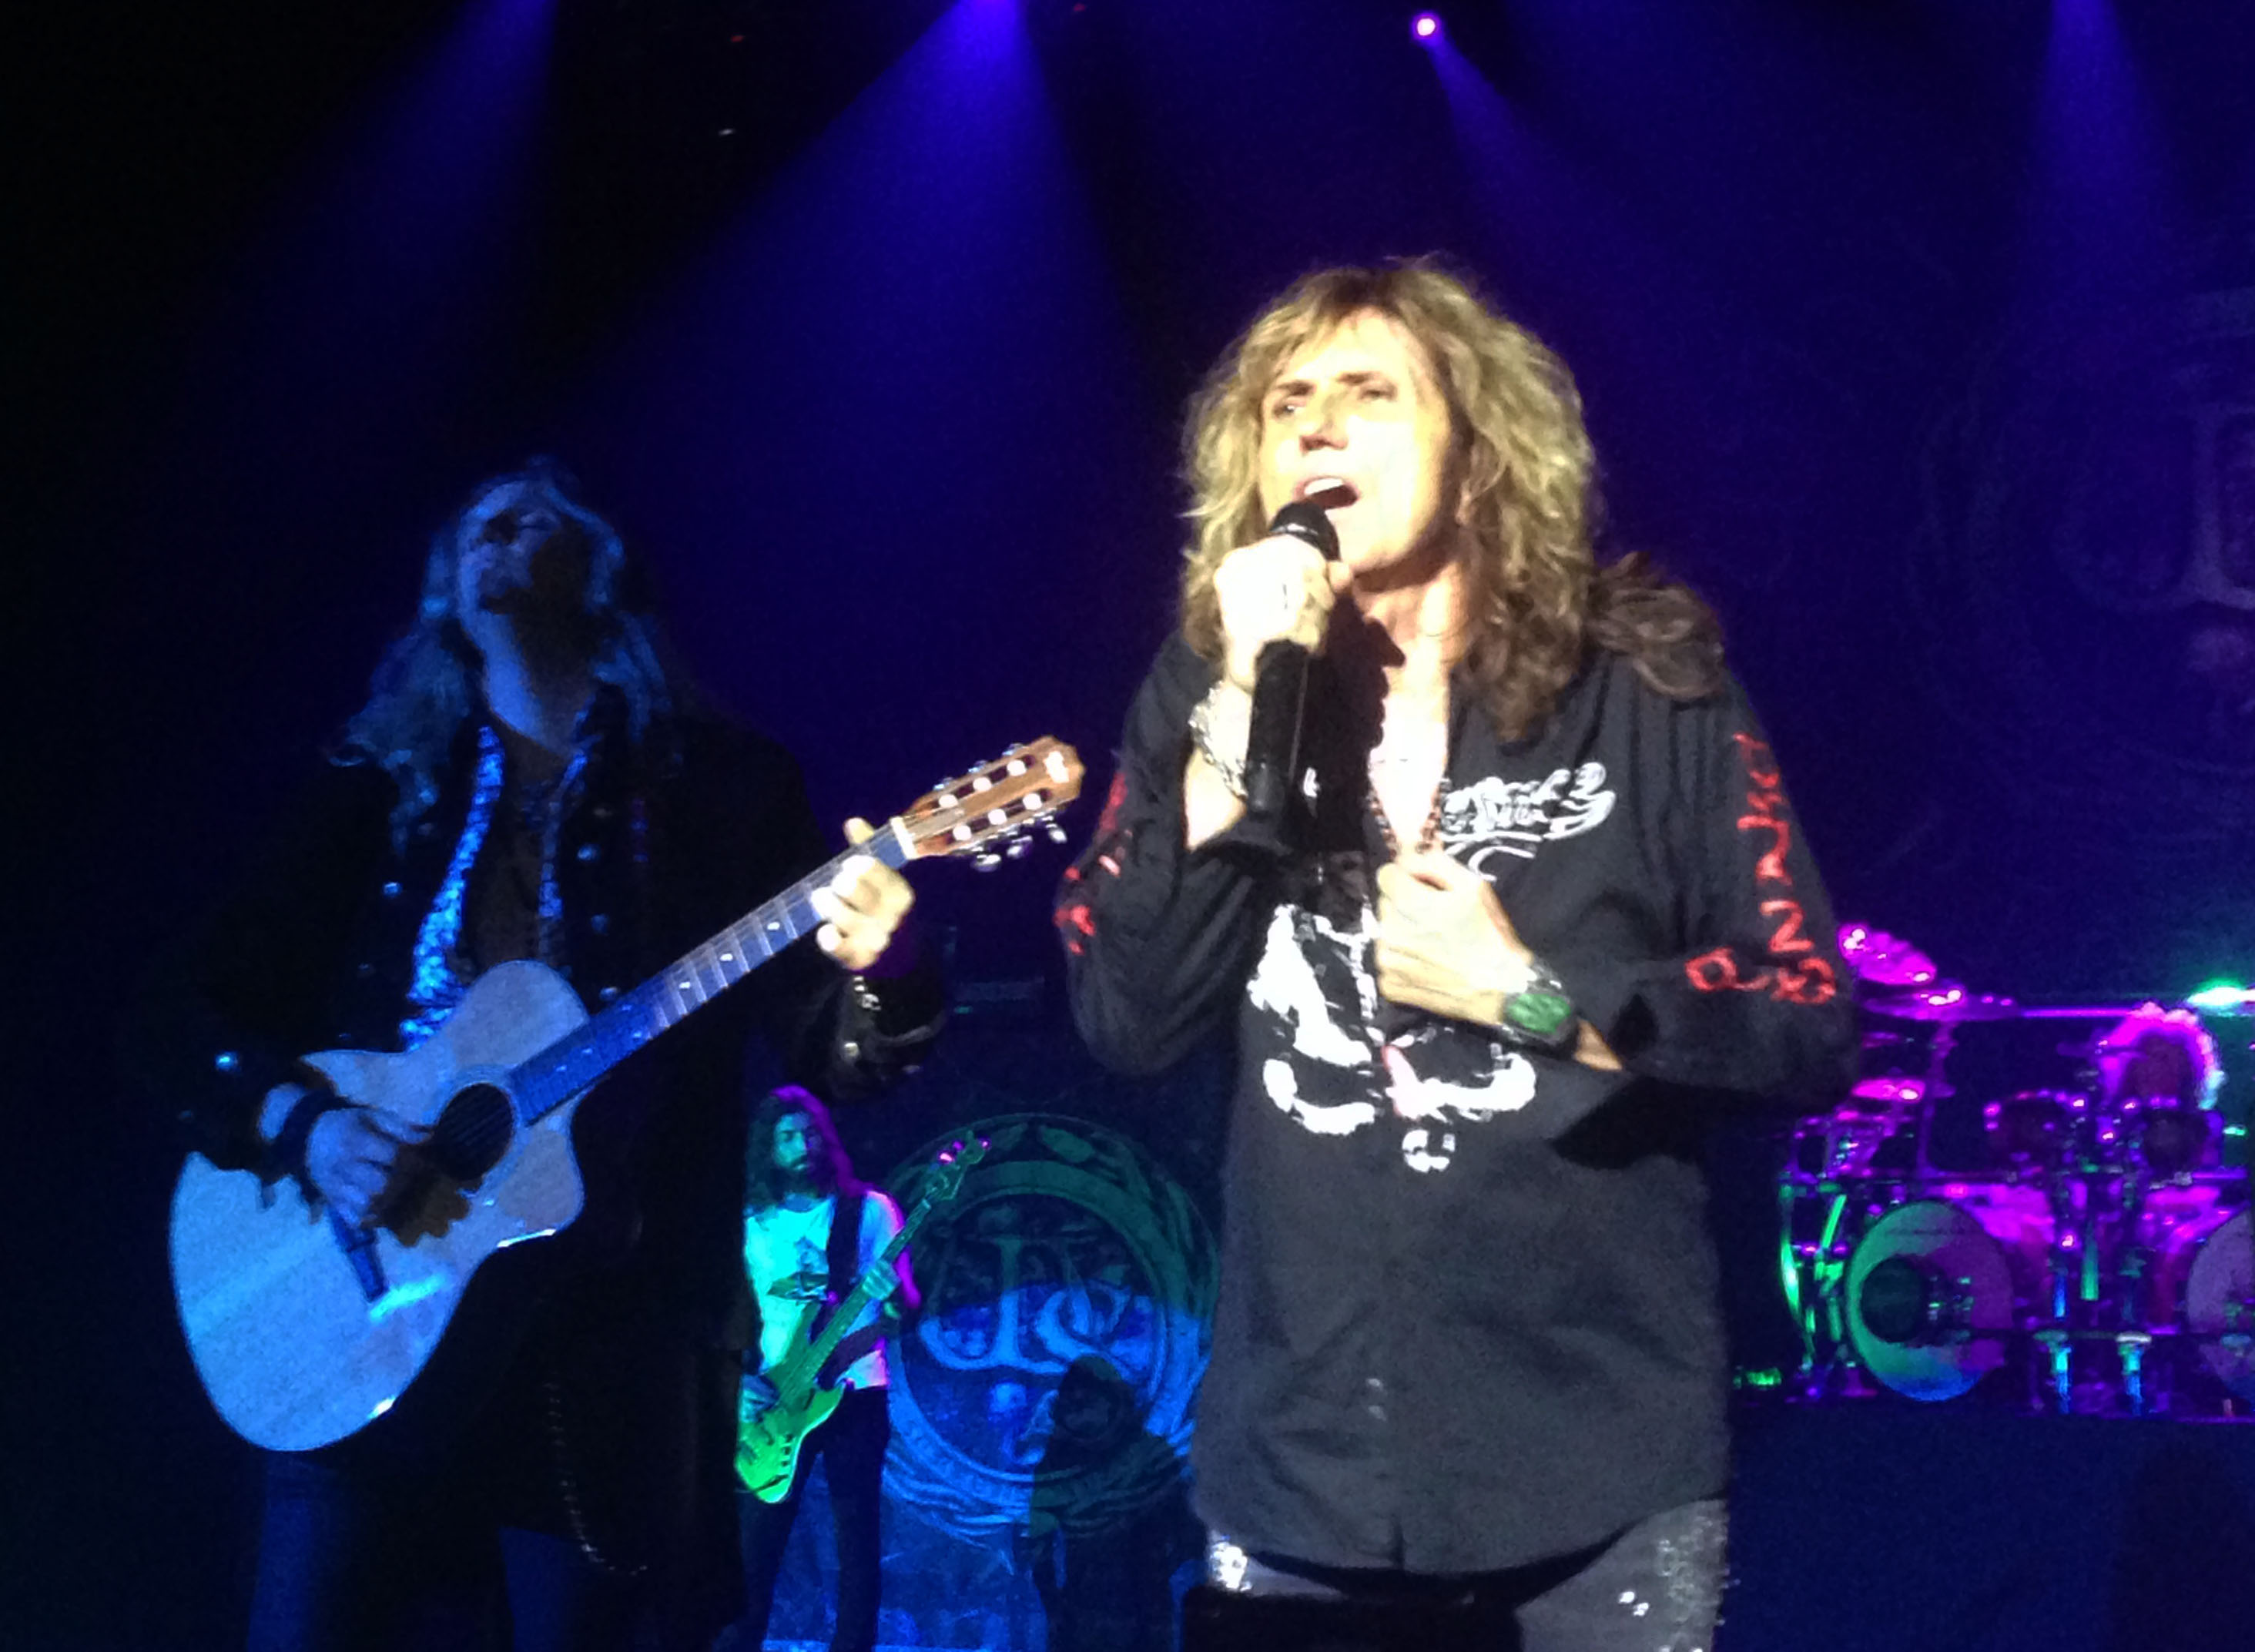 Whitesnake David Coverdale Purple Album Москва Альберт Сафиуллин